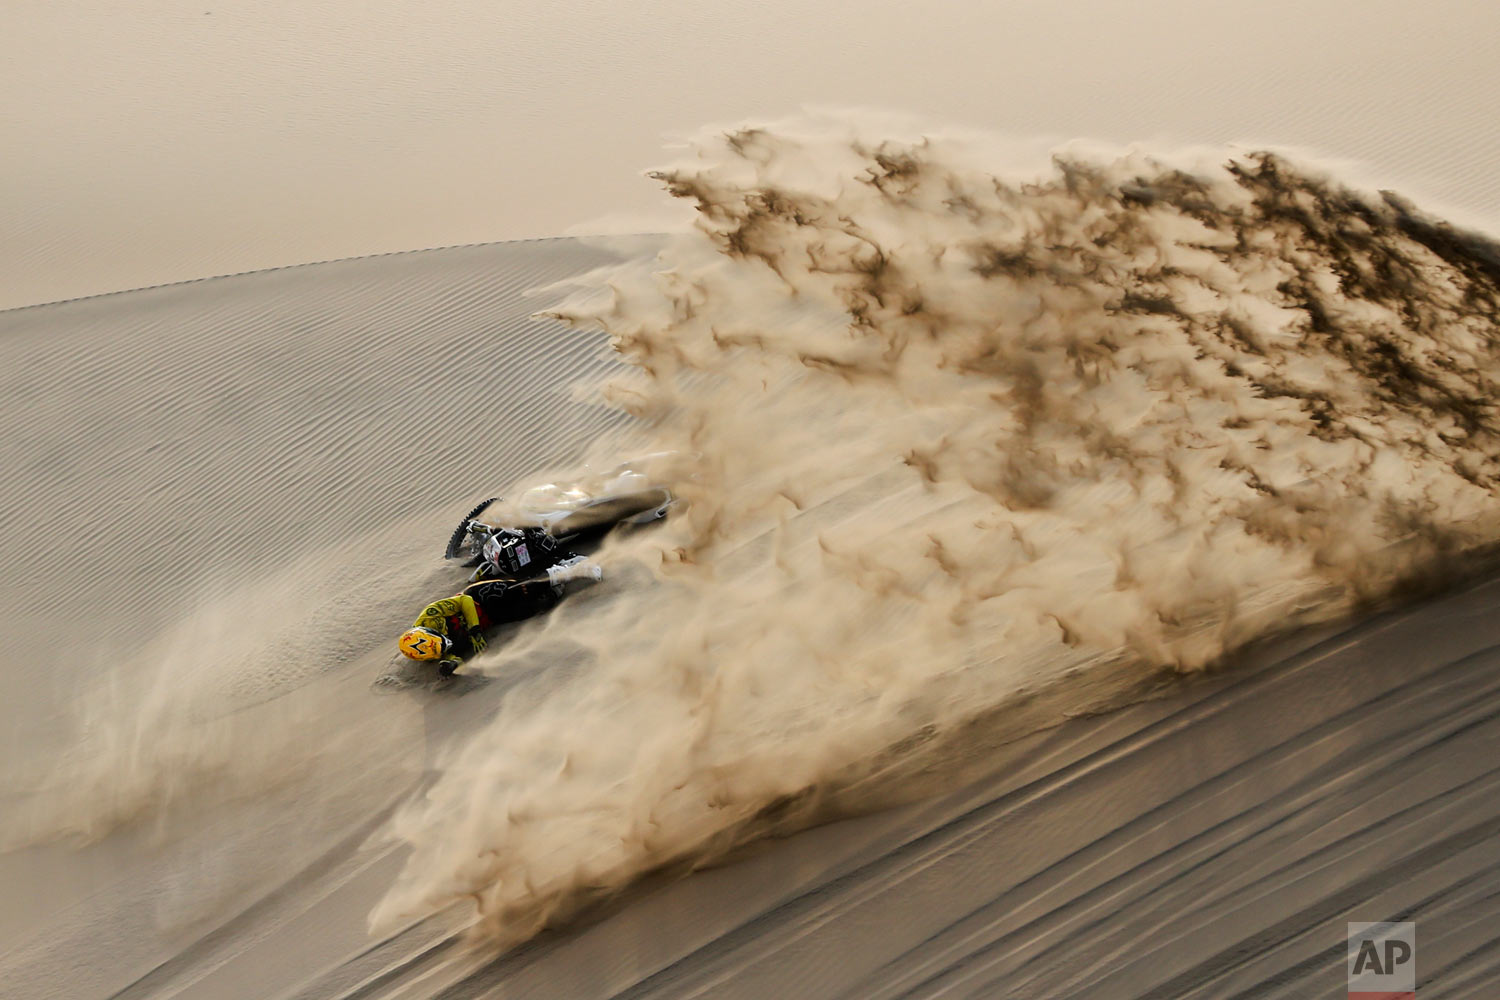 Jan Brabec of Czech Republic falls from his Husqvarna motorbike during the stage nine of the Dakar Rally in Pisco, Peru, Jan. 16, 2019. (AP Photo/Ricardo Mazalan)